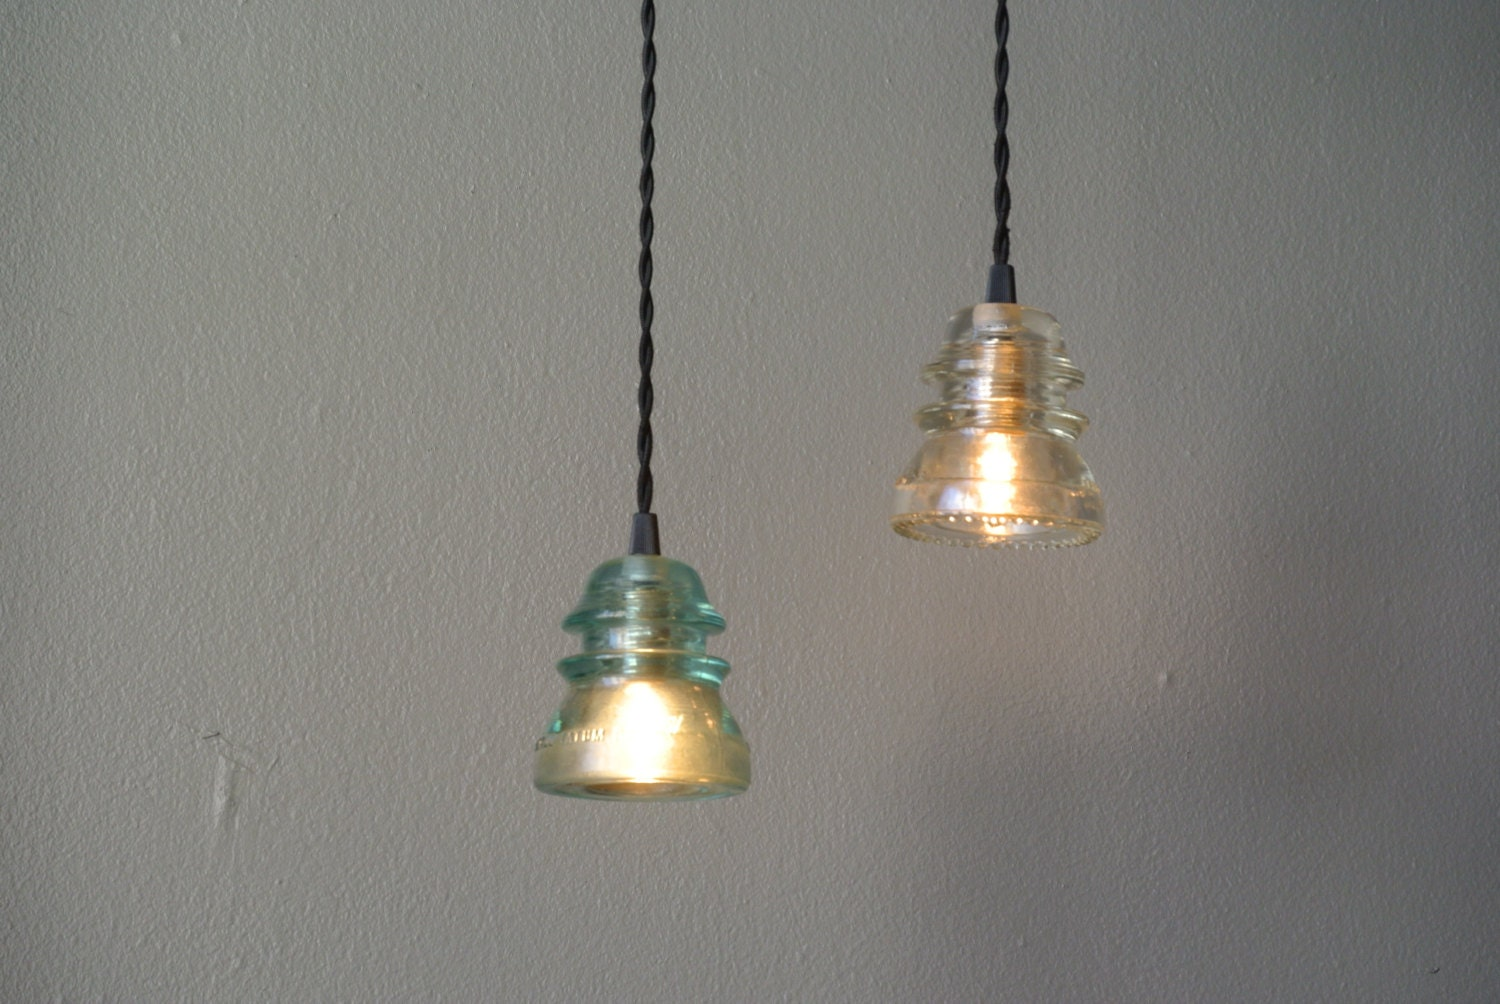 Insulator pendant light aqua or clear glass by pepeandcarols for Insulator pendant light